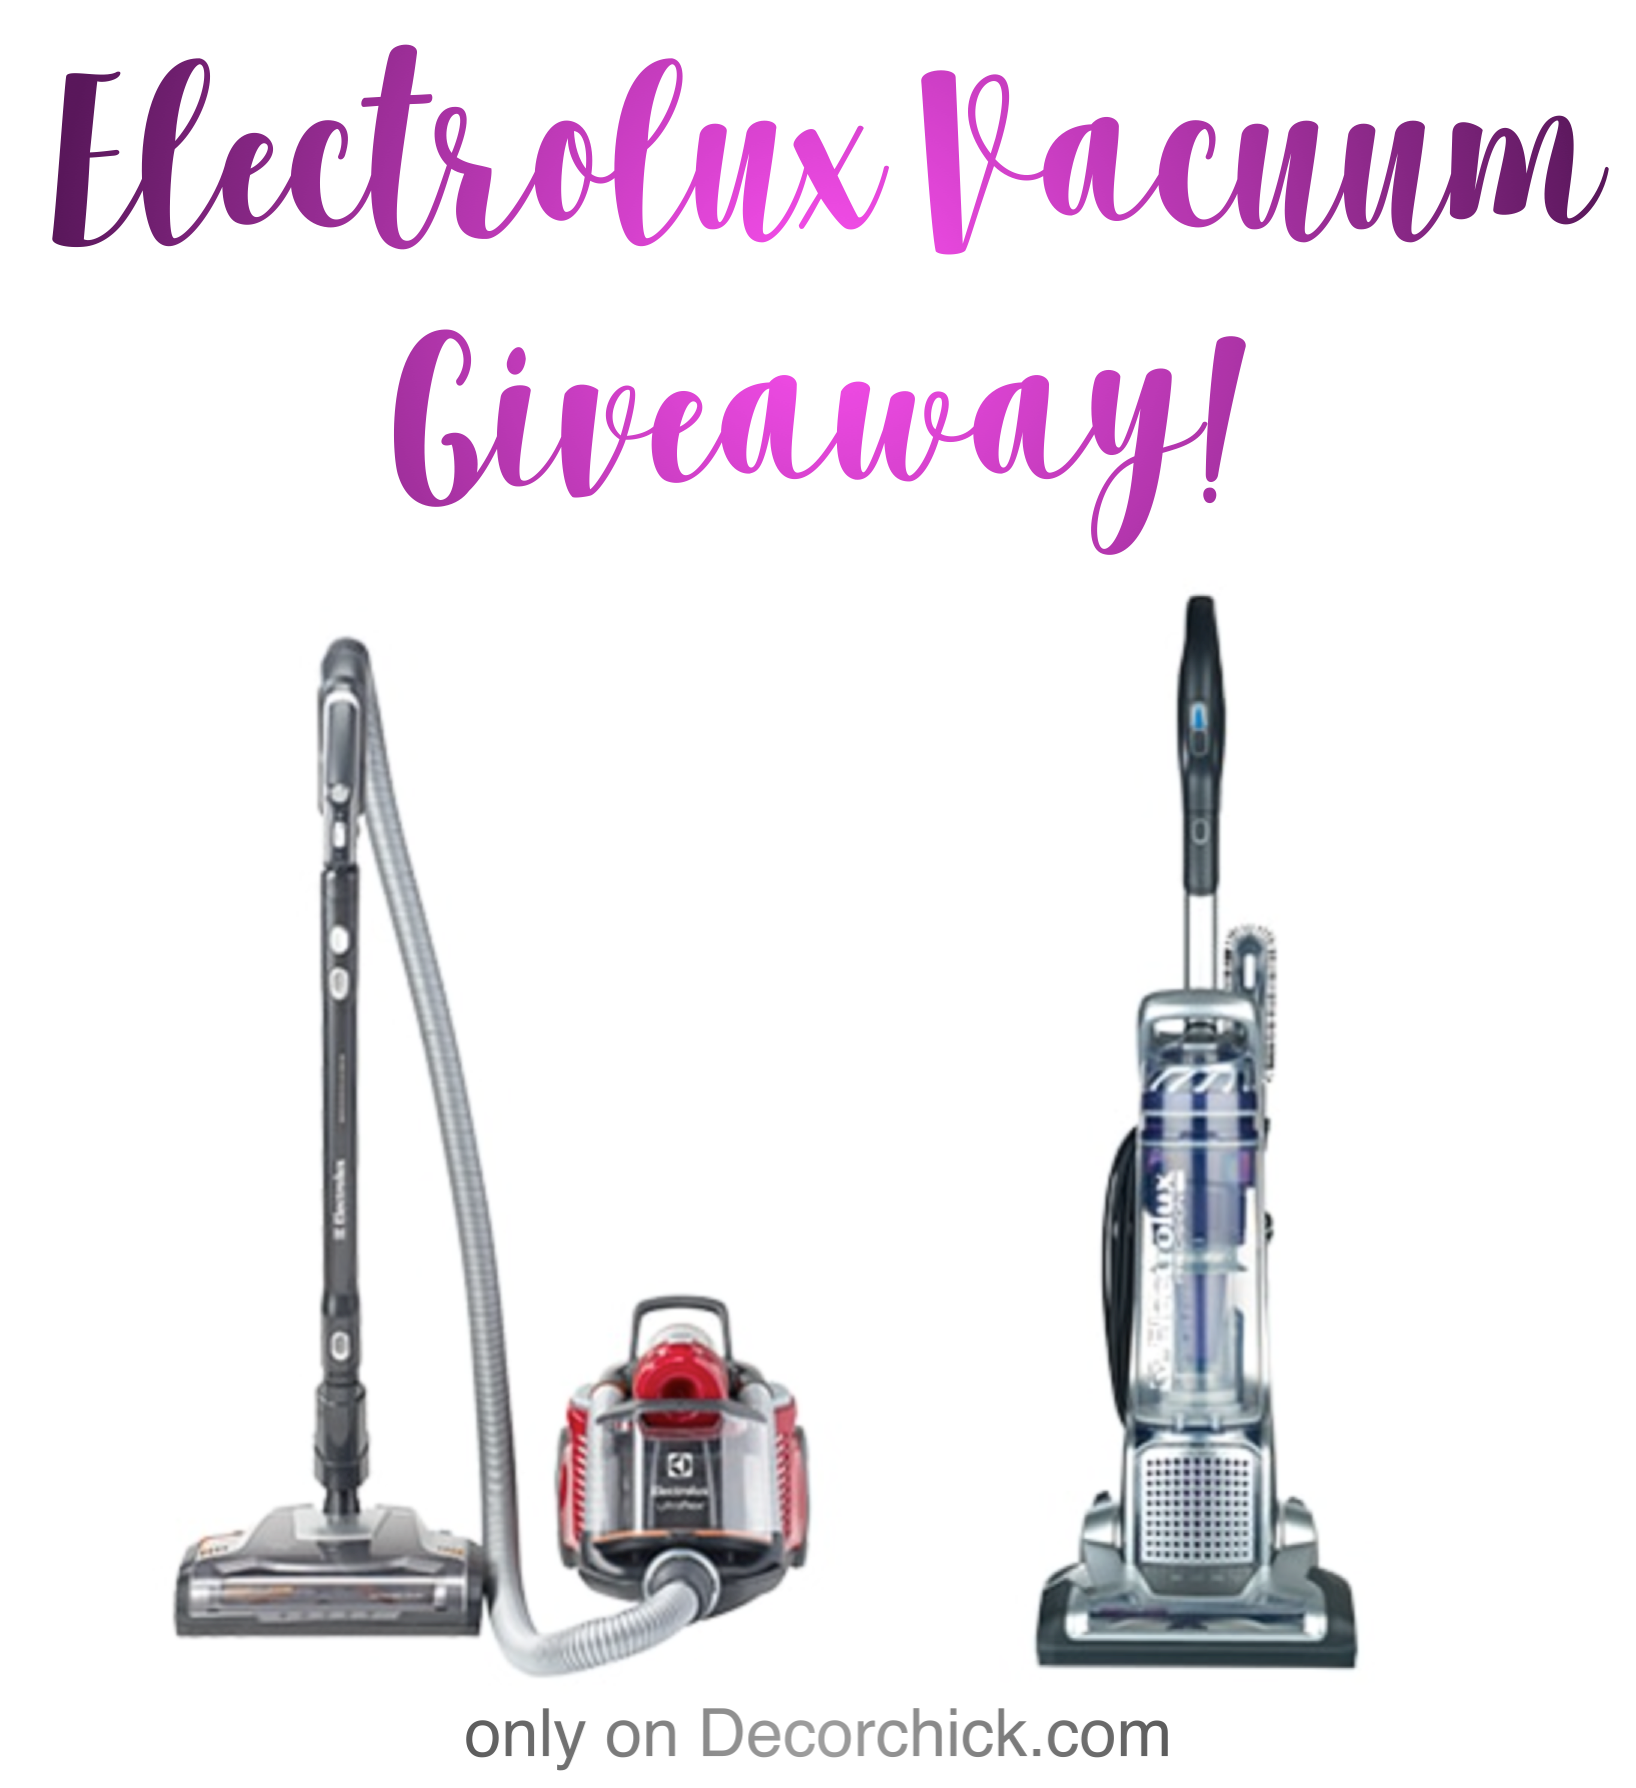 Electrolux vacuum Giveaway | Decorchick!®